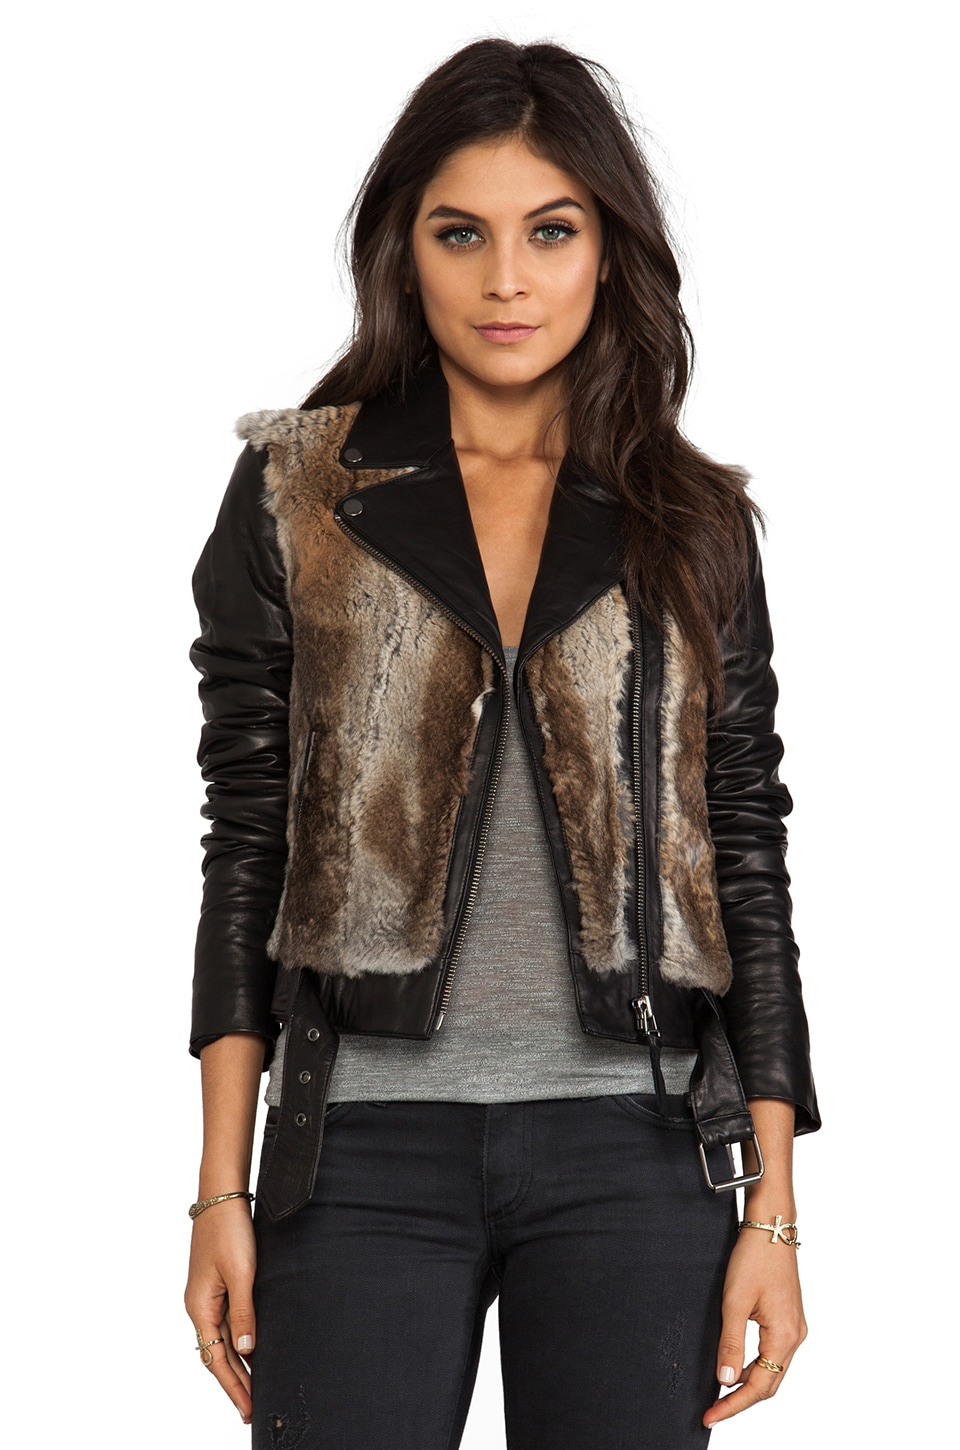 Mackage Tamika Rabbit/Leather Jacket in Natural